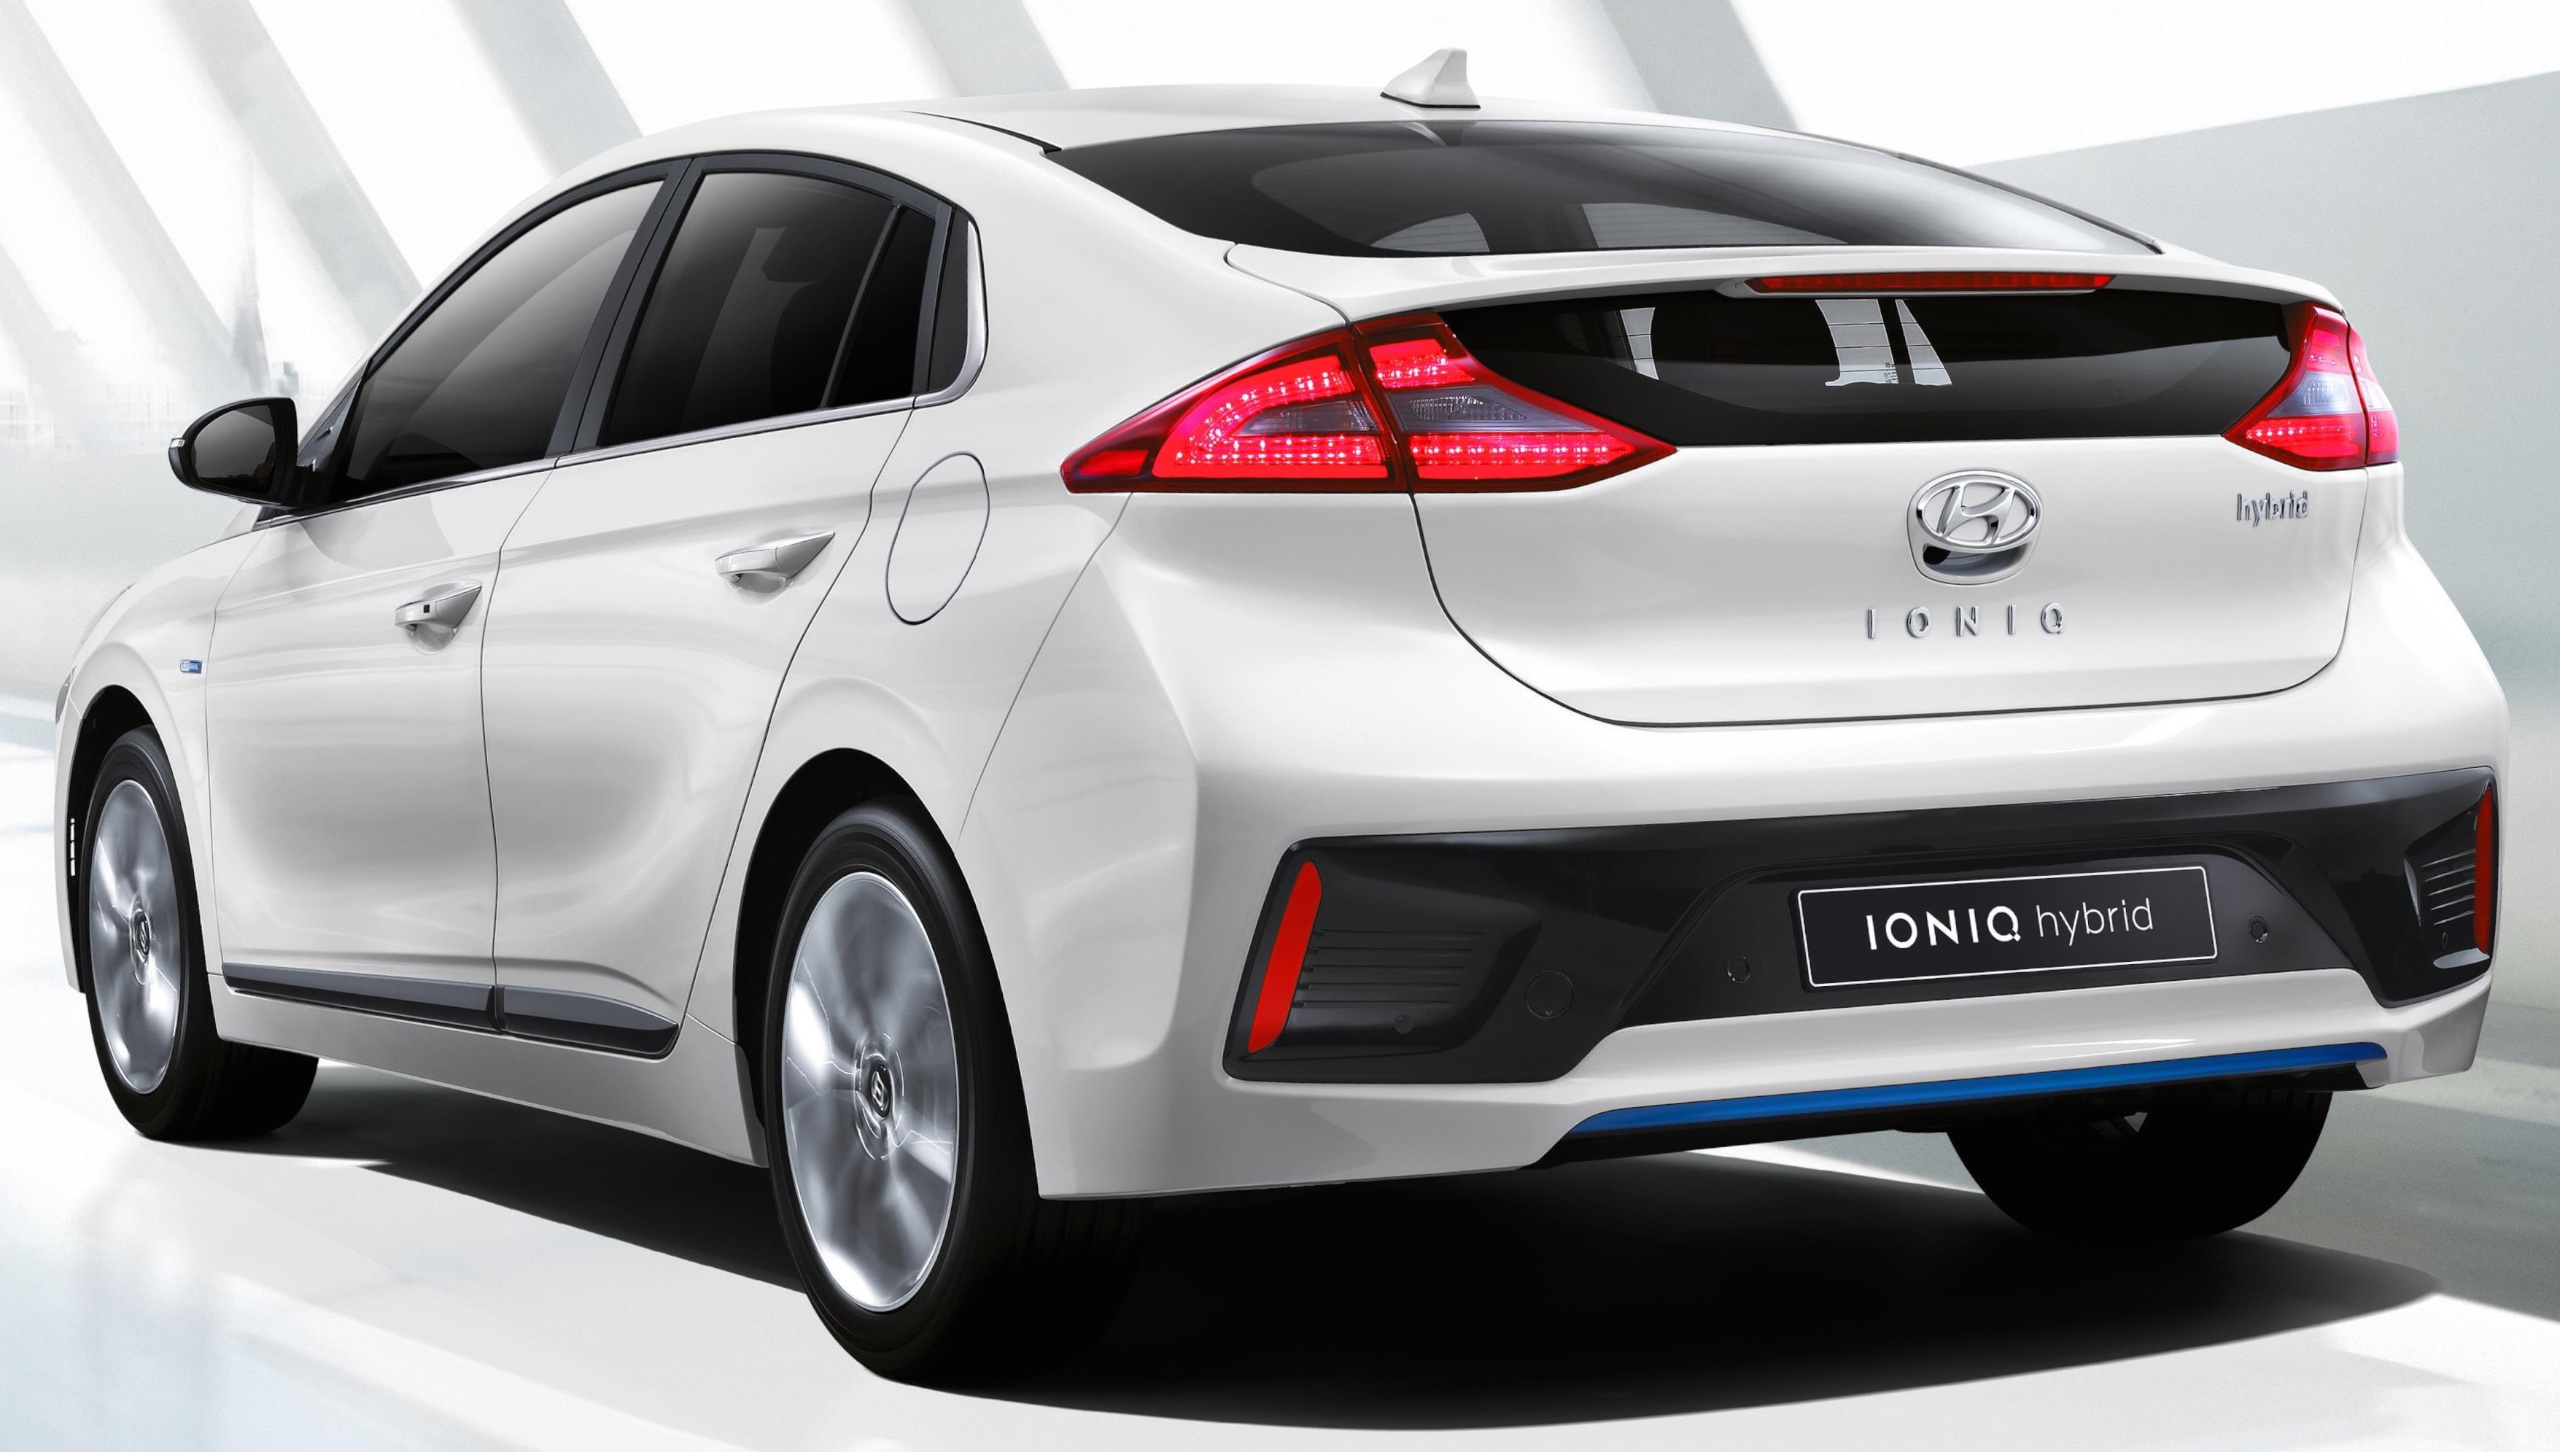 hyundai ioniq hybrid first details and official images. Black Bedroom Furniture Sets. Home Design Ideas